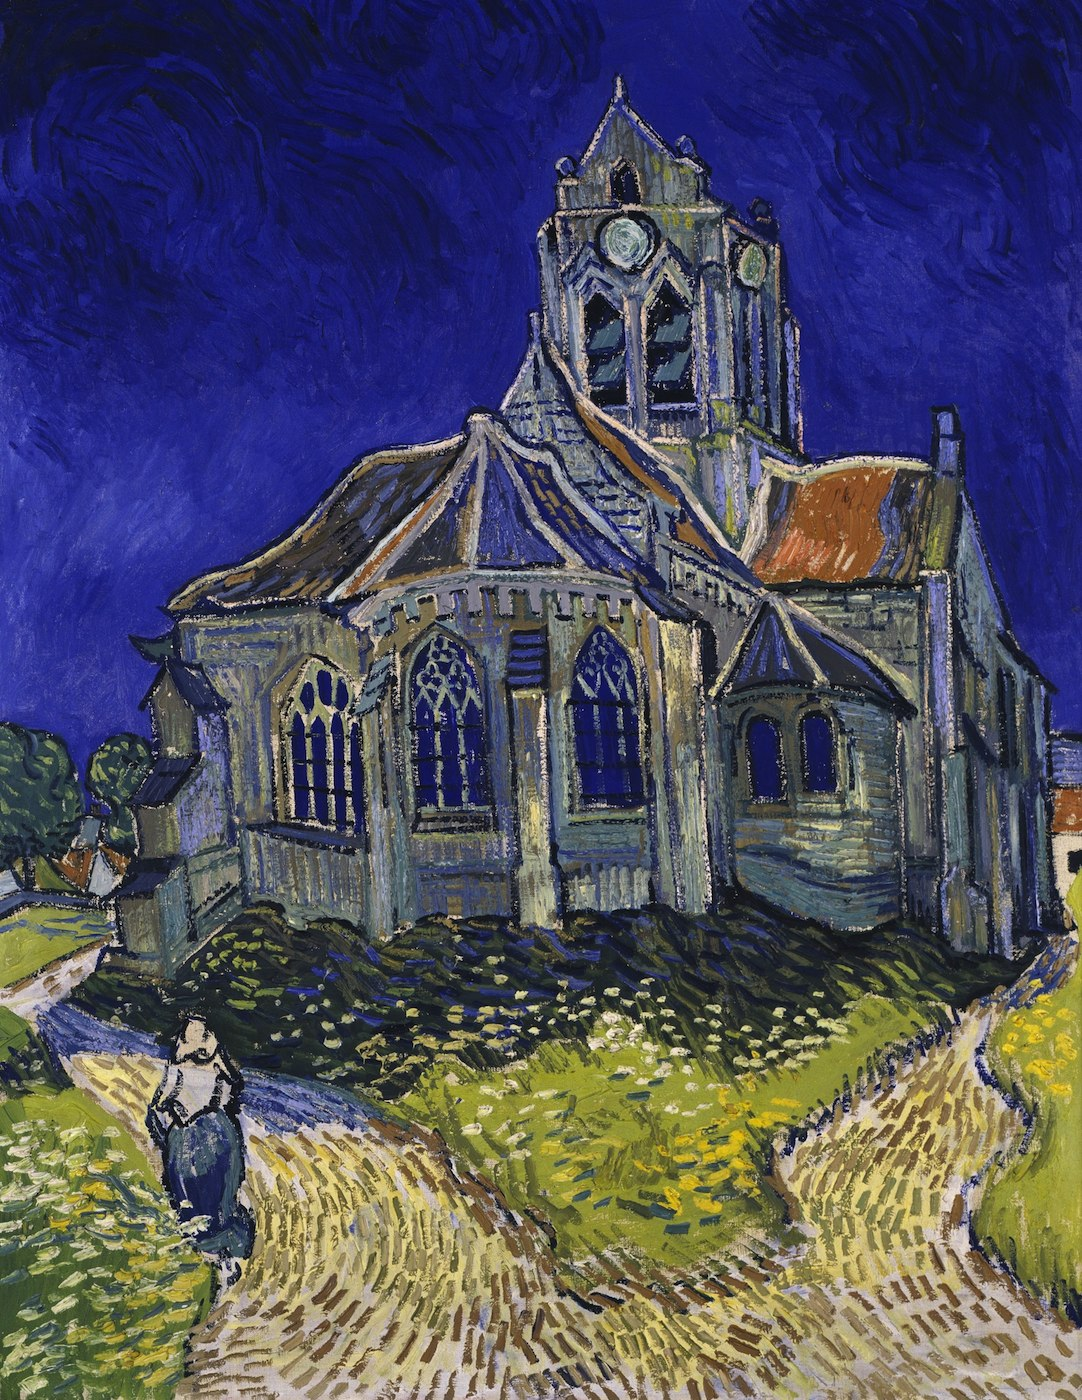 an analysis on vincent van goghs Analysis of the night cafe - vincent van gogh by: elizabeth harding: vincent's two cafes i often think that the night is more alive and more richly colored than the.